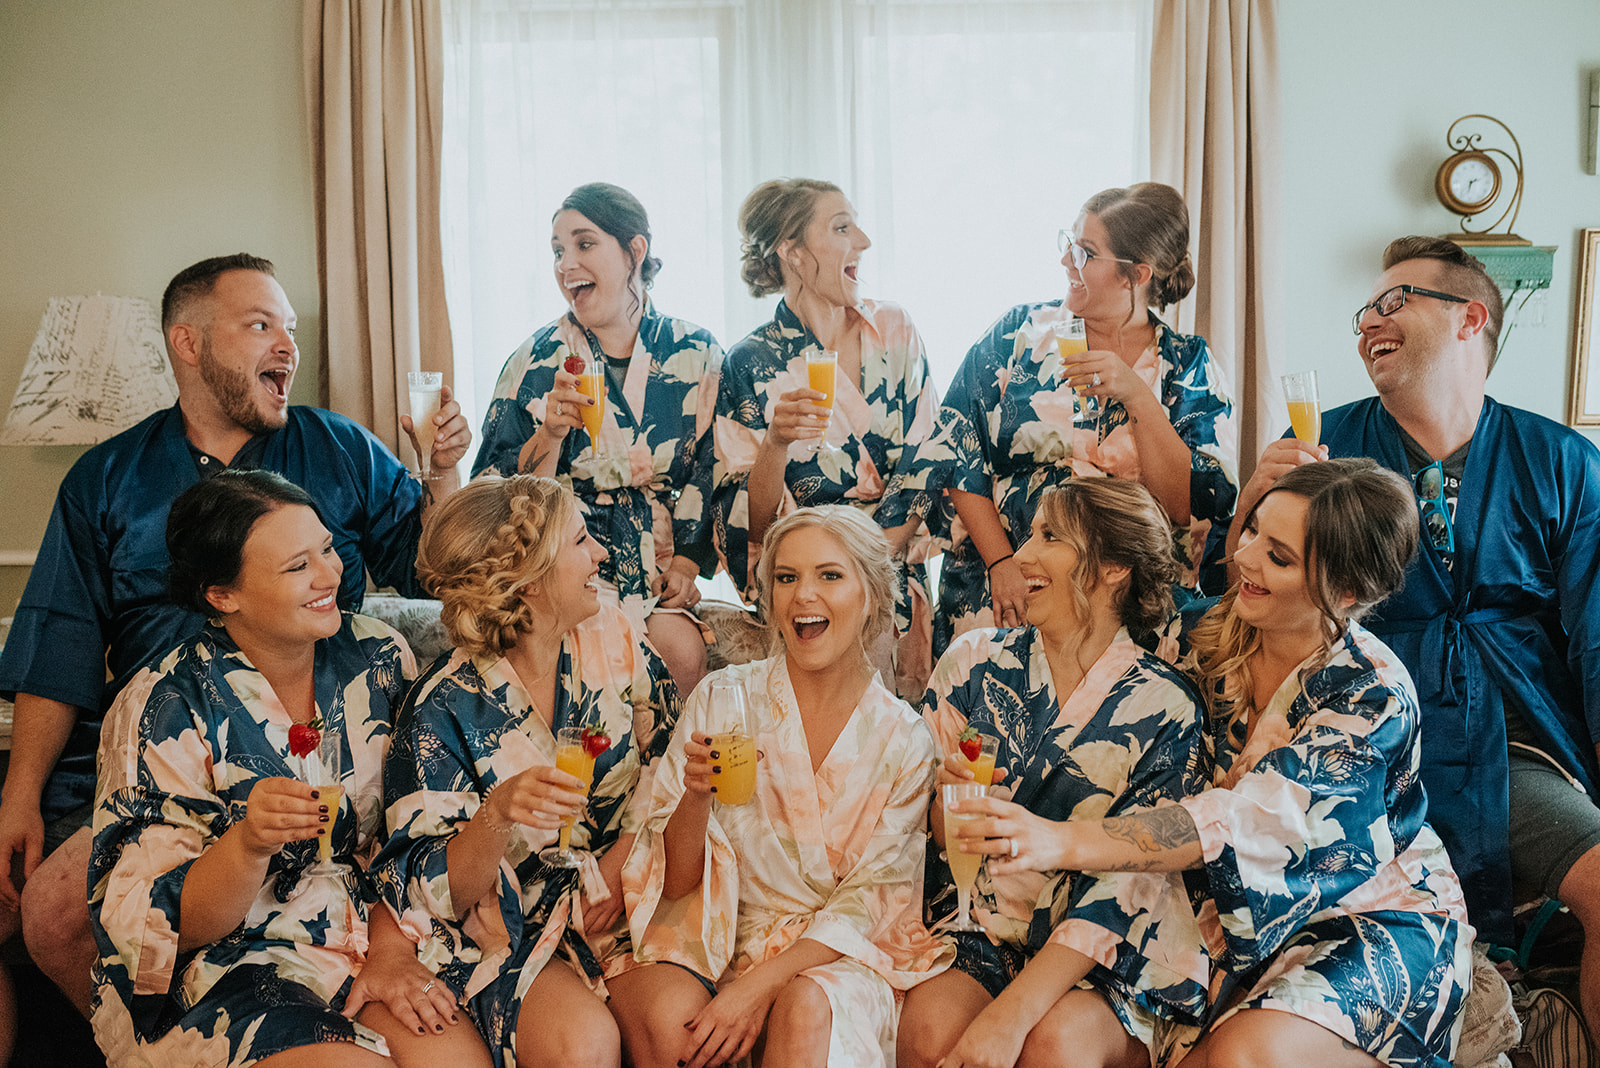 overthevineswisconsinwedding_0153.jpg